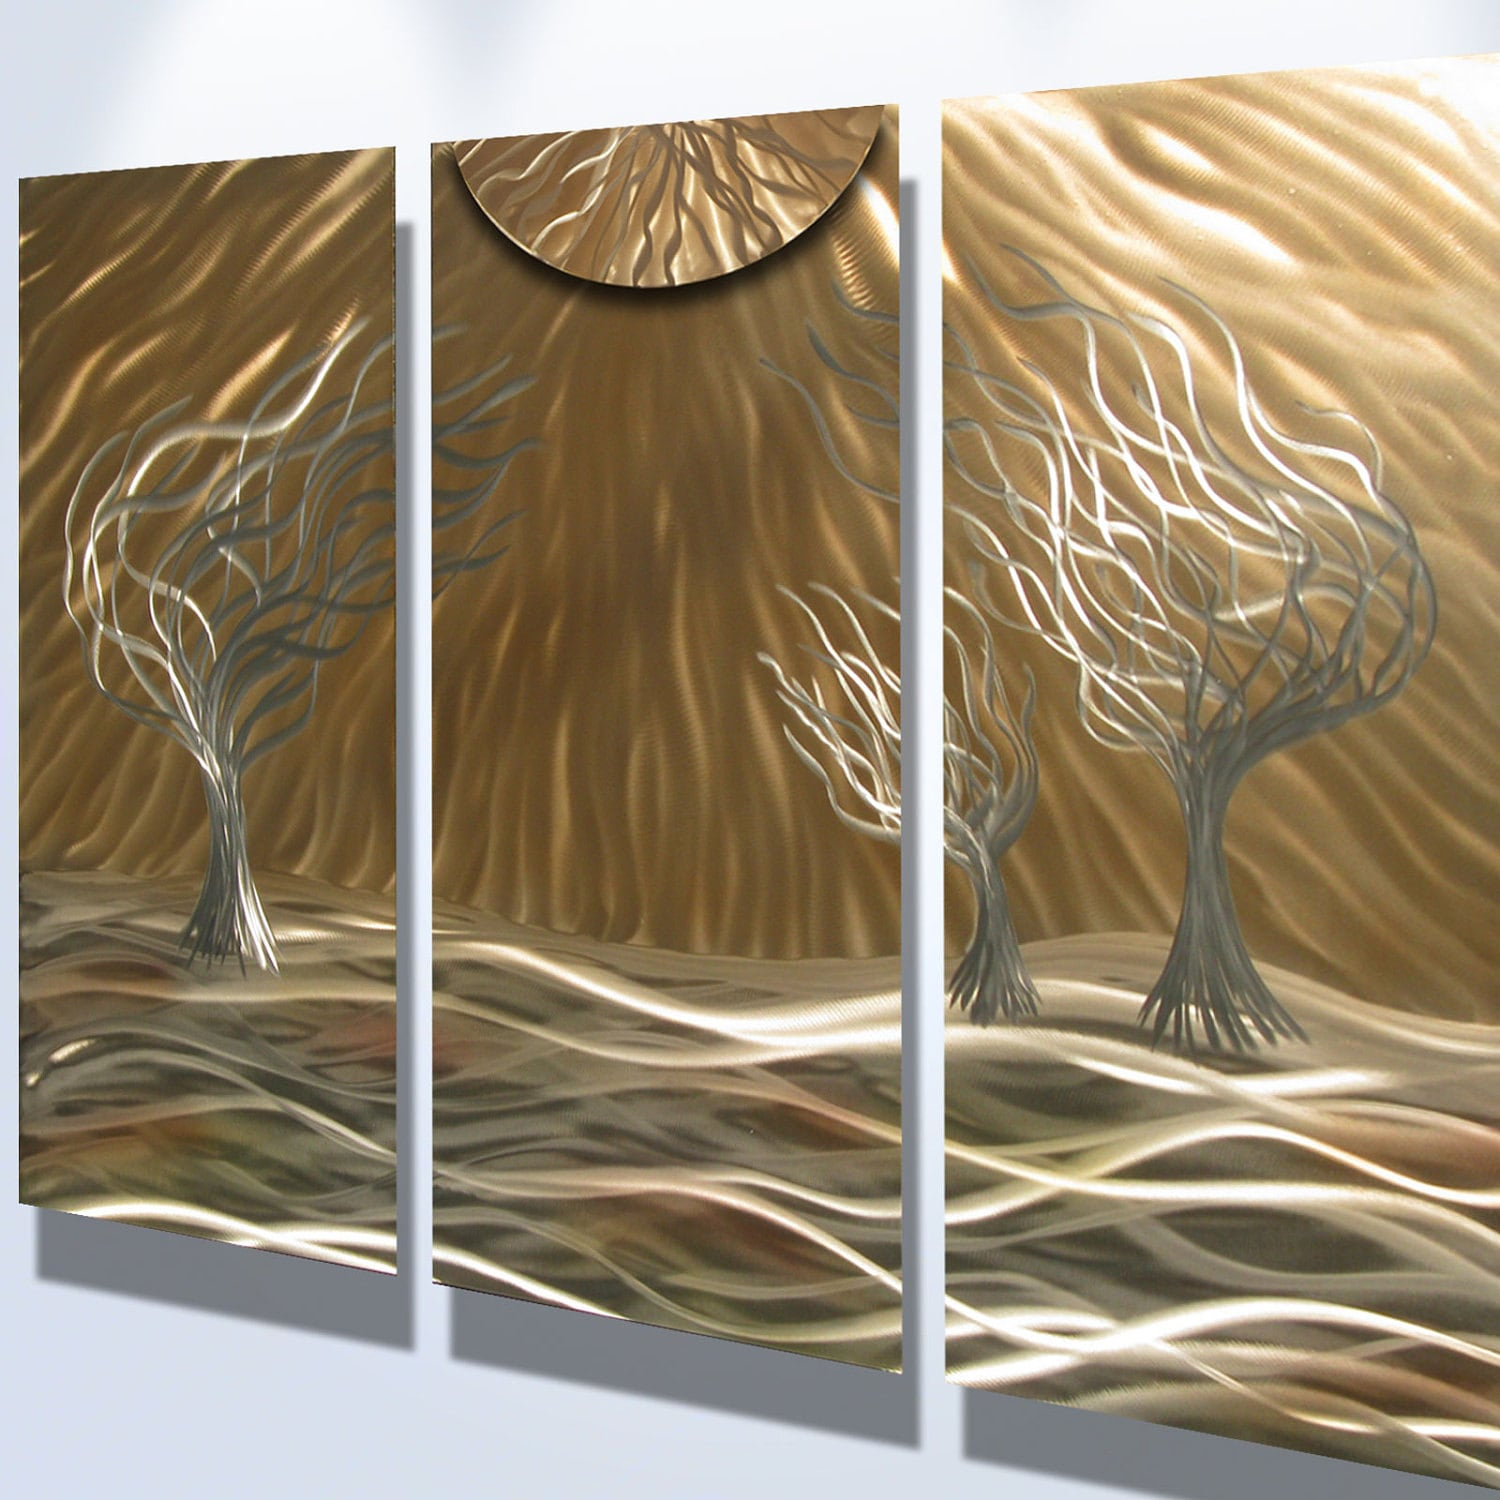 Metal Wall Art Decor Abstract : Metal wall art aluminum decor abstract contemporary modern